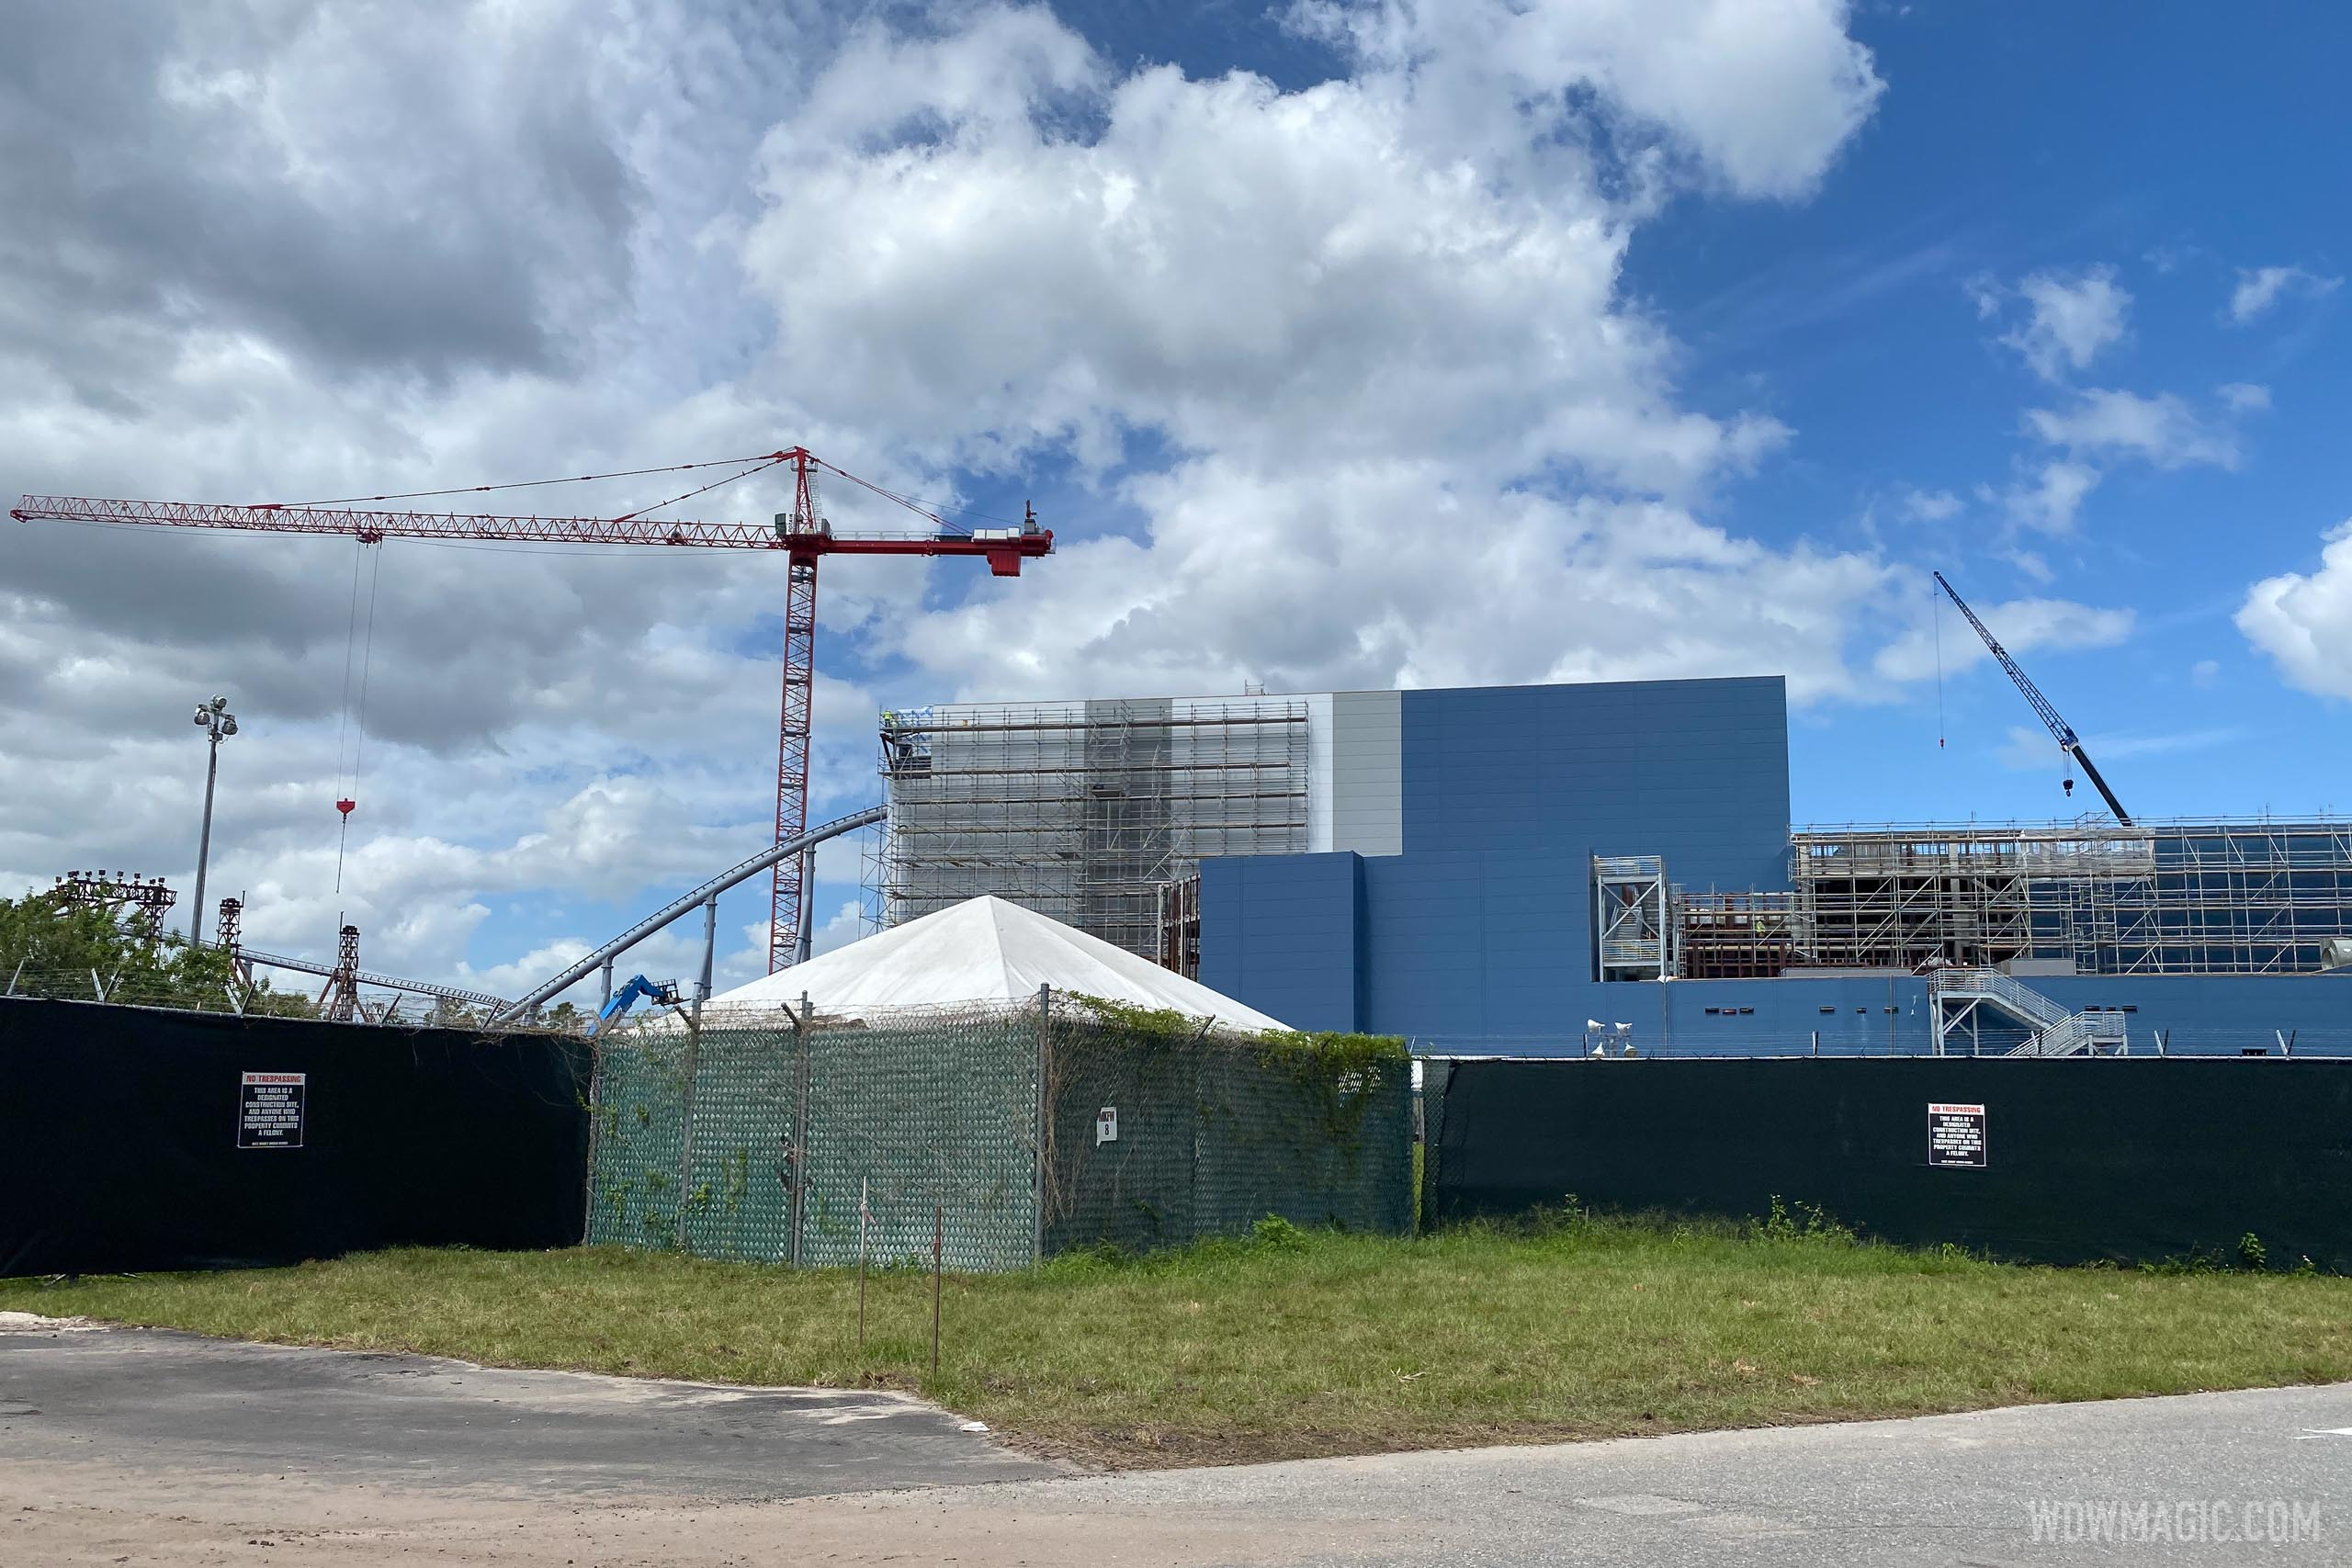 View of the ride building for TRON